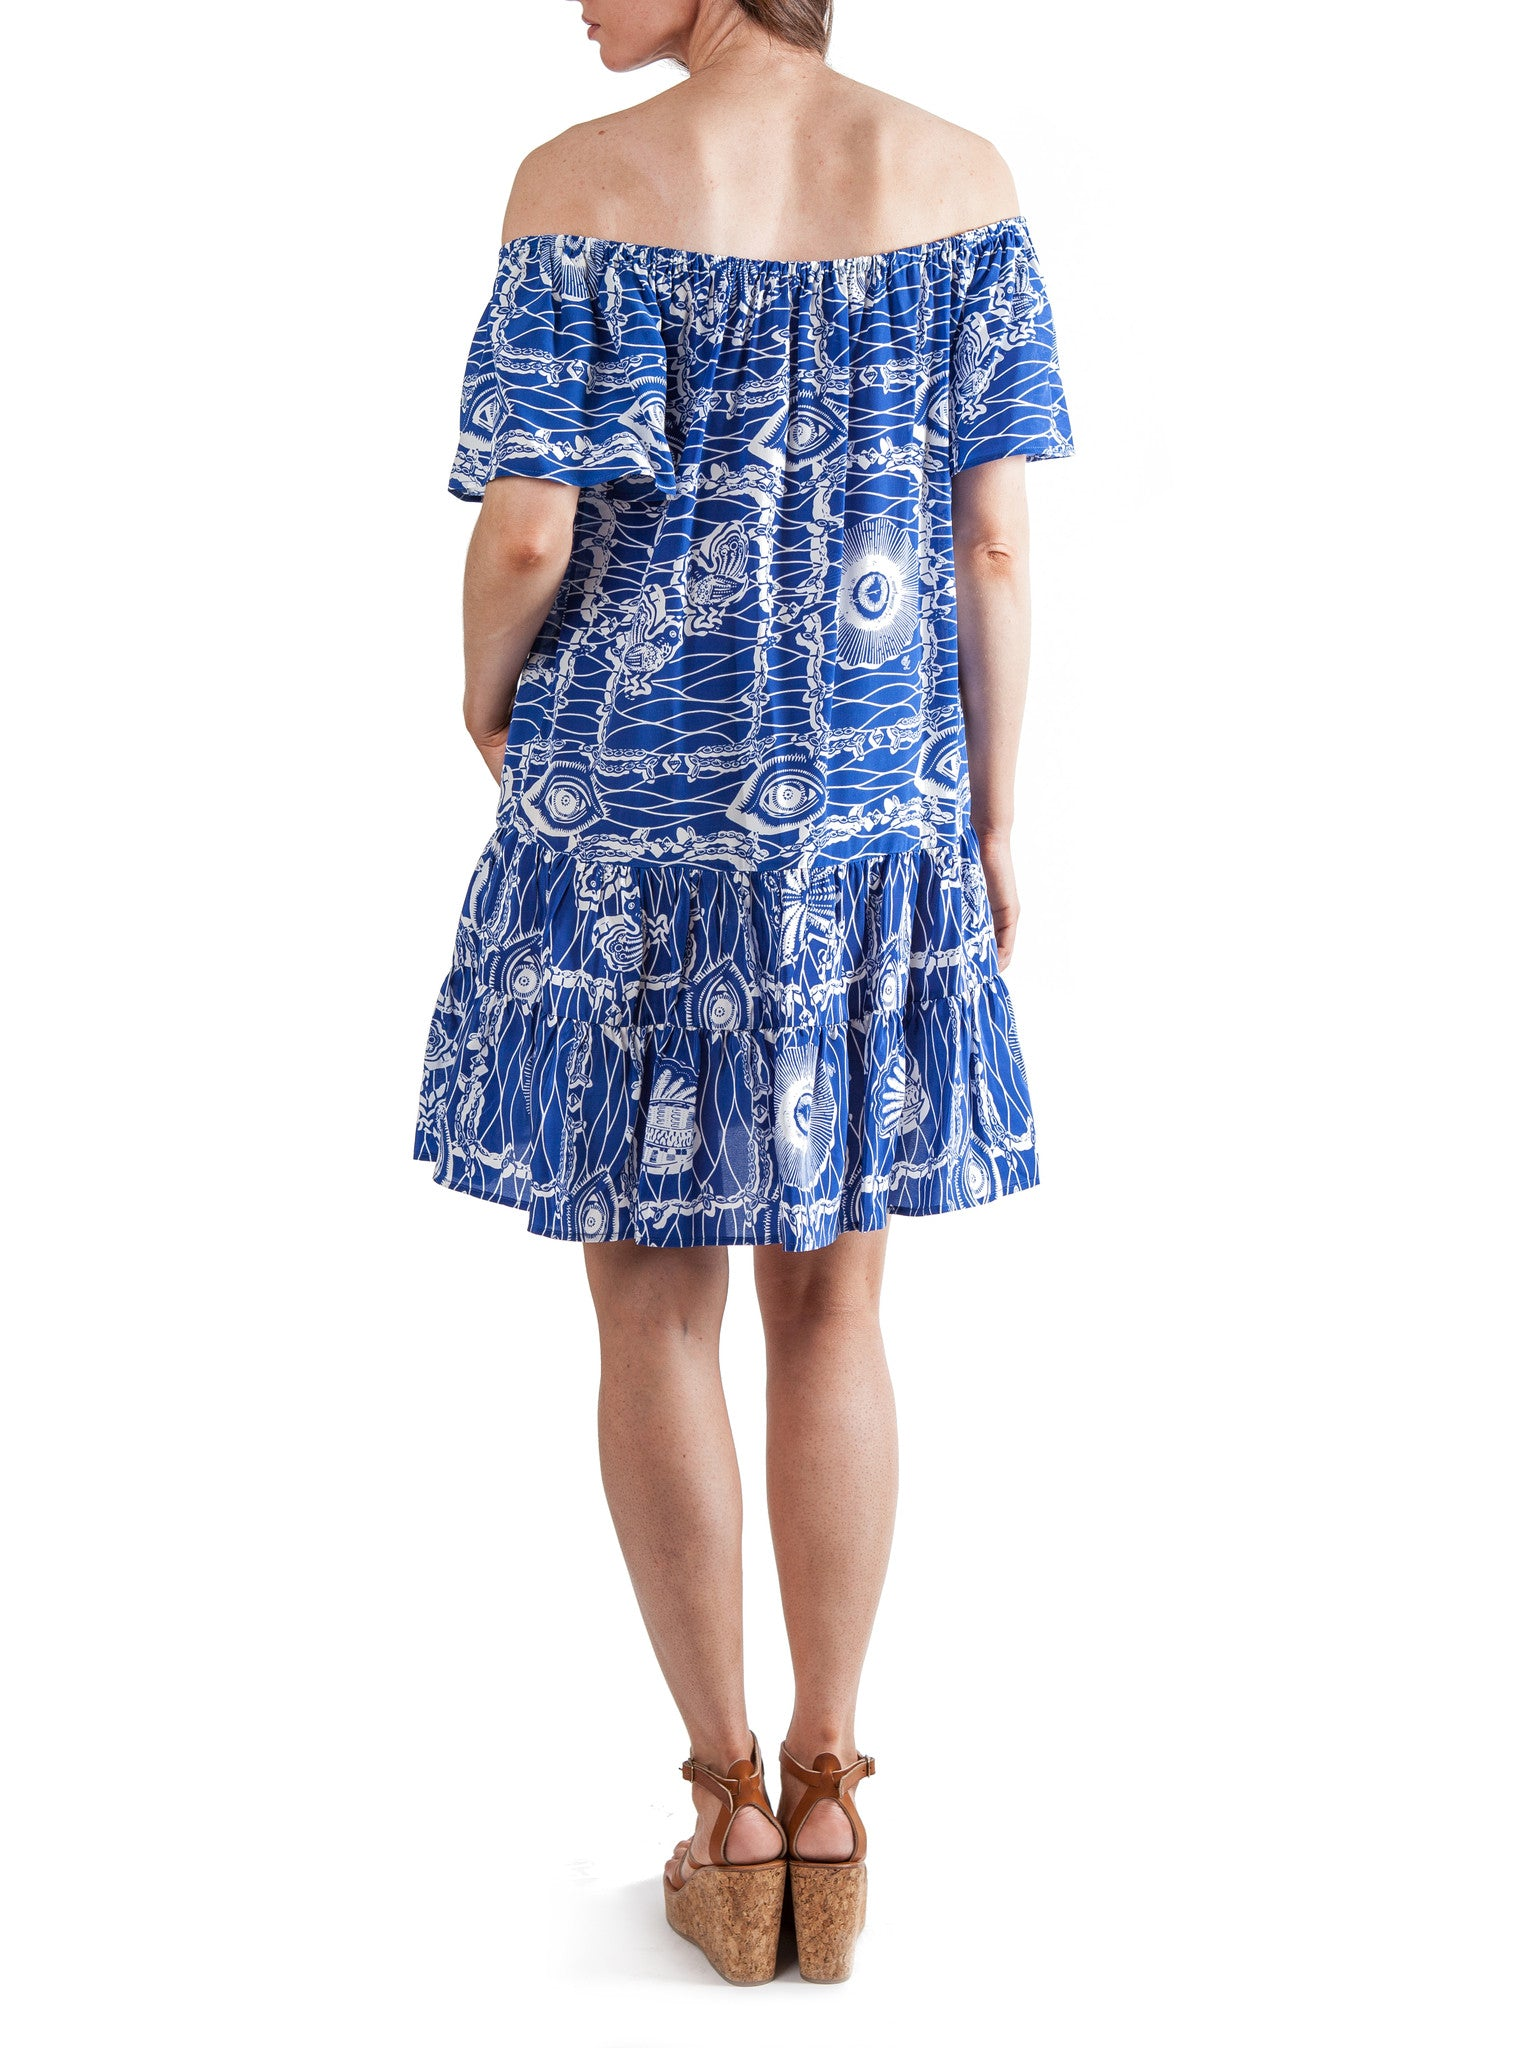 Printed short ruffled dress | Silk Crepe de Chine